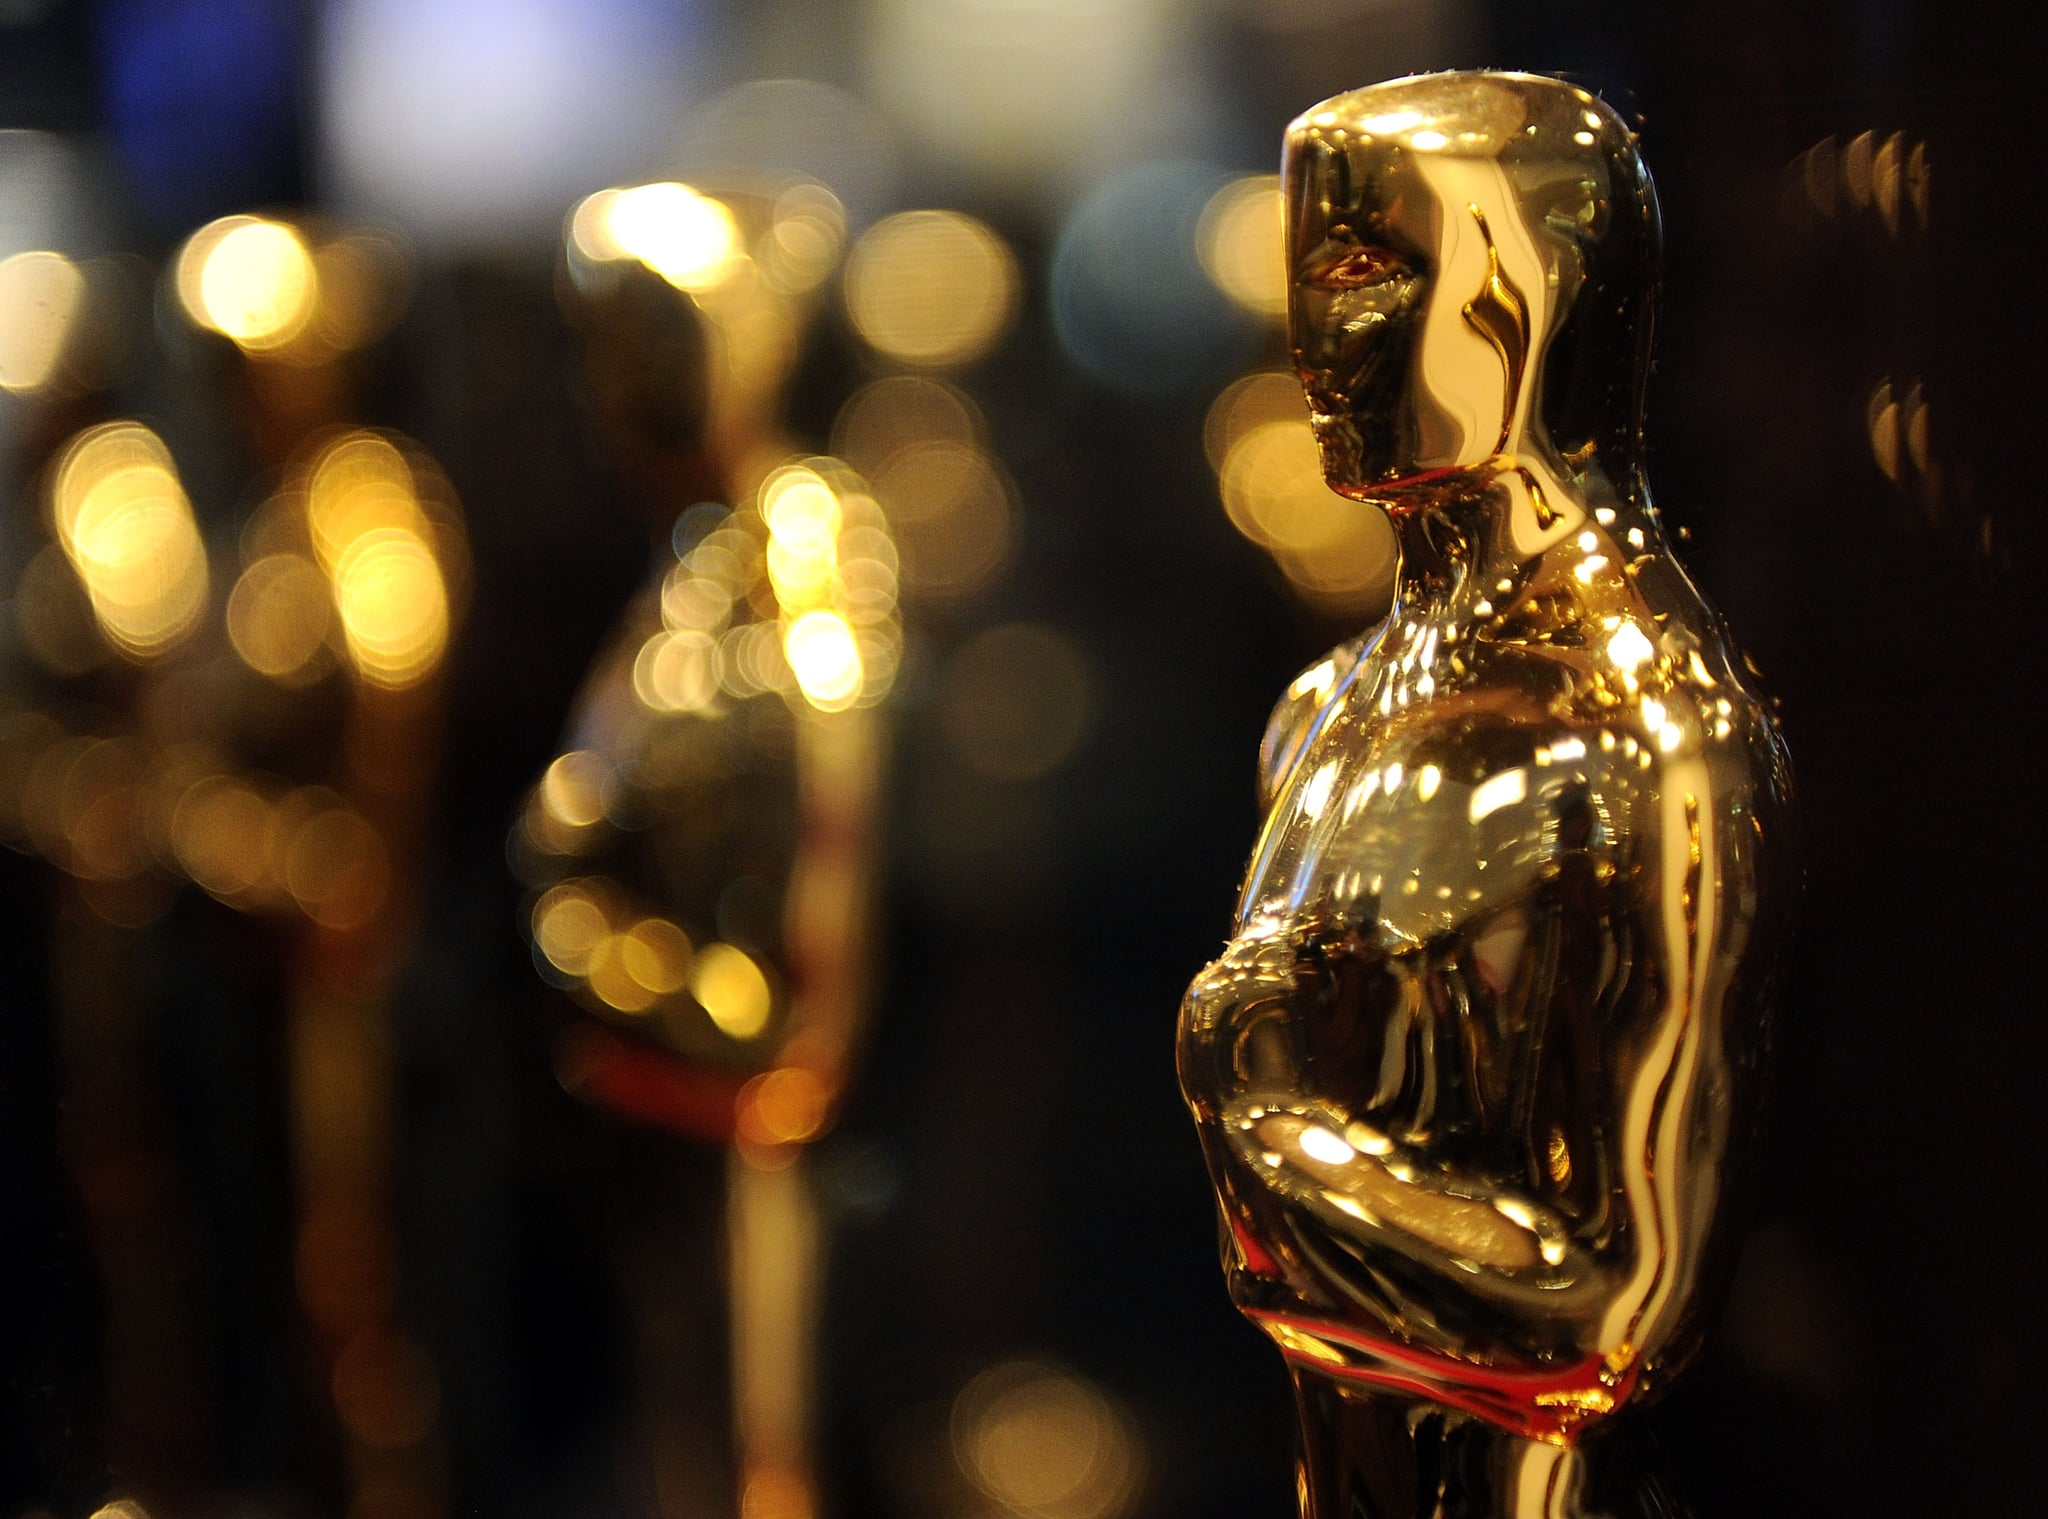 NEW YORK - FEBRUARY 25:  Overview of Oscar statues on display at